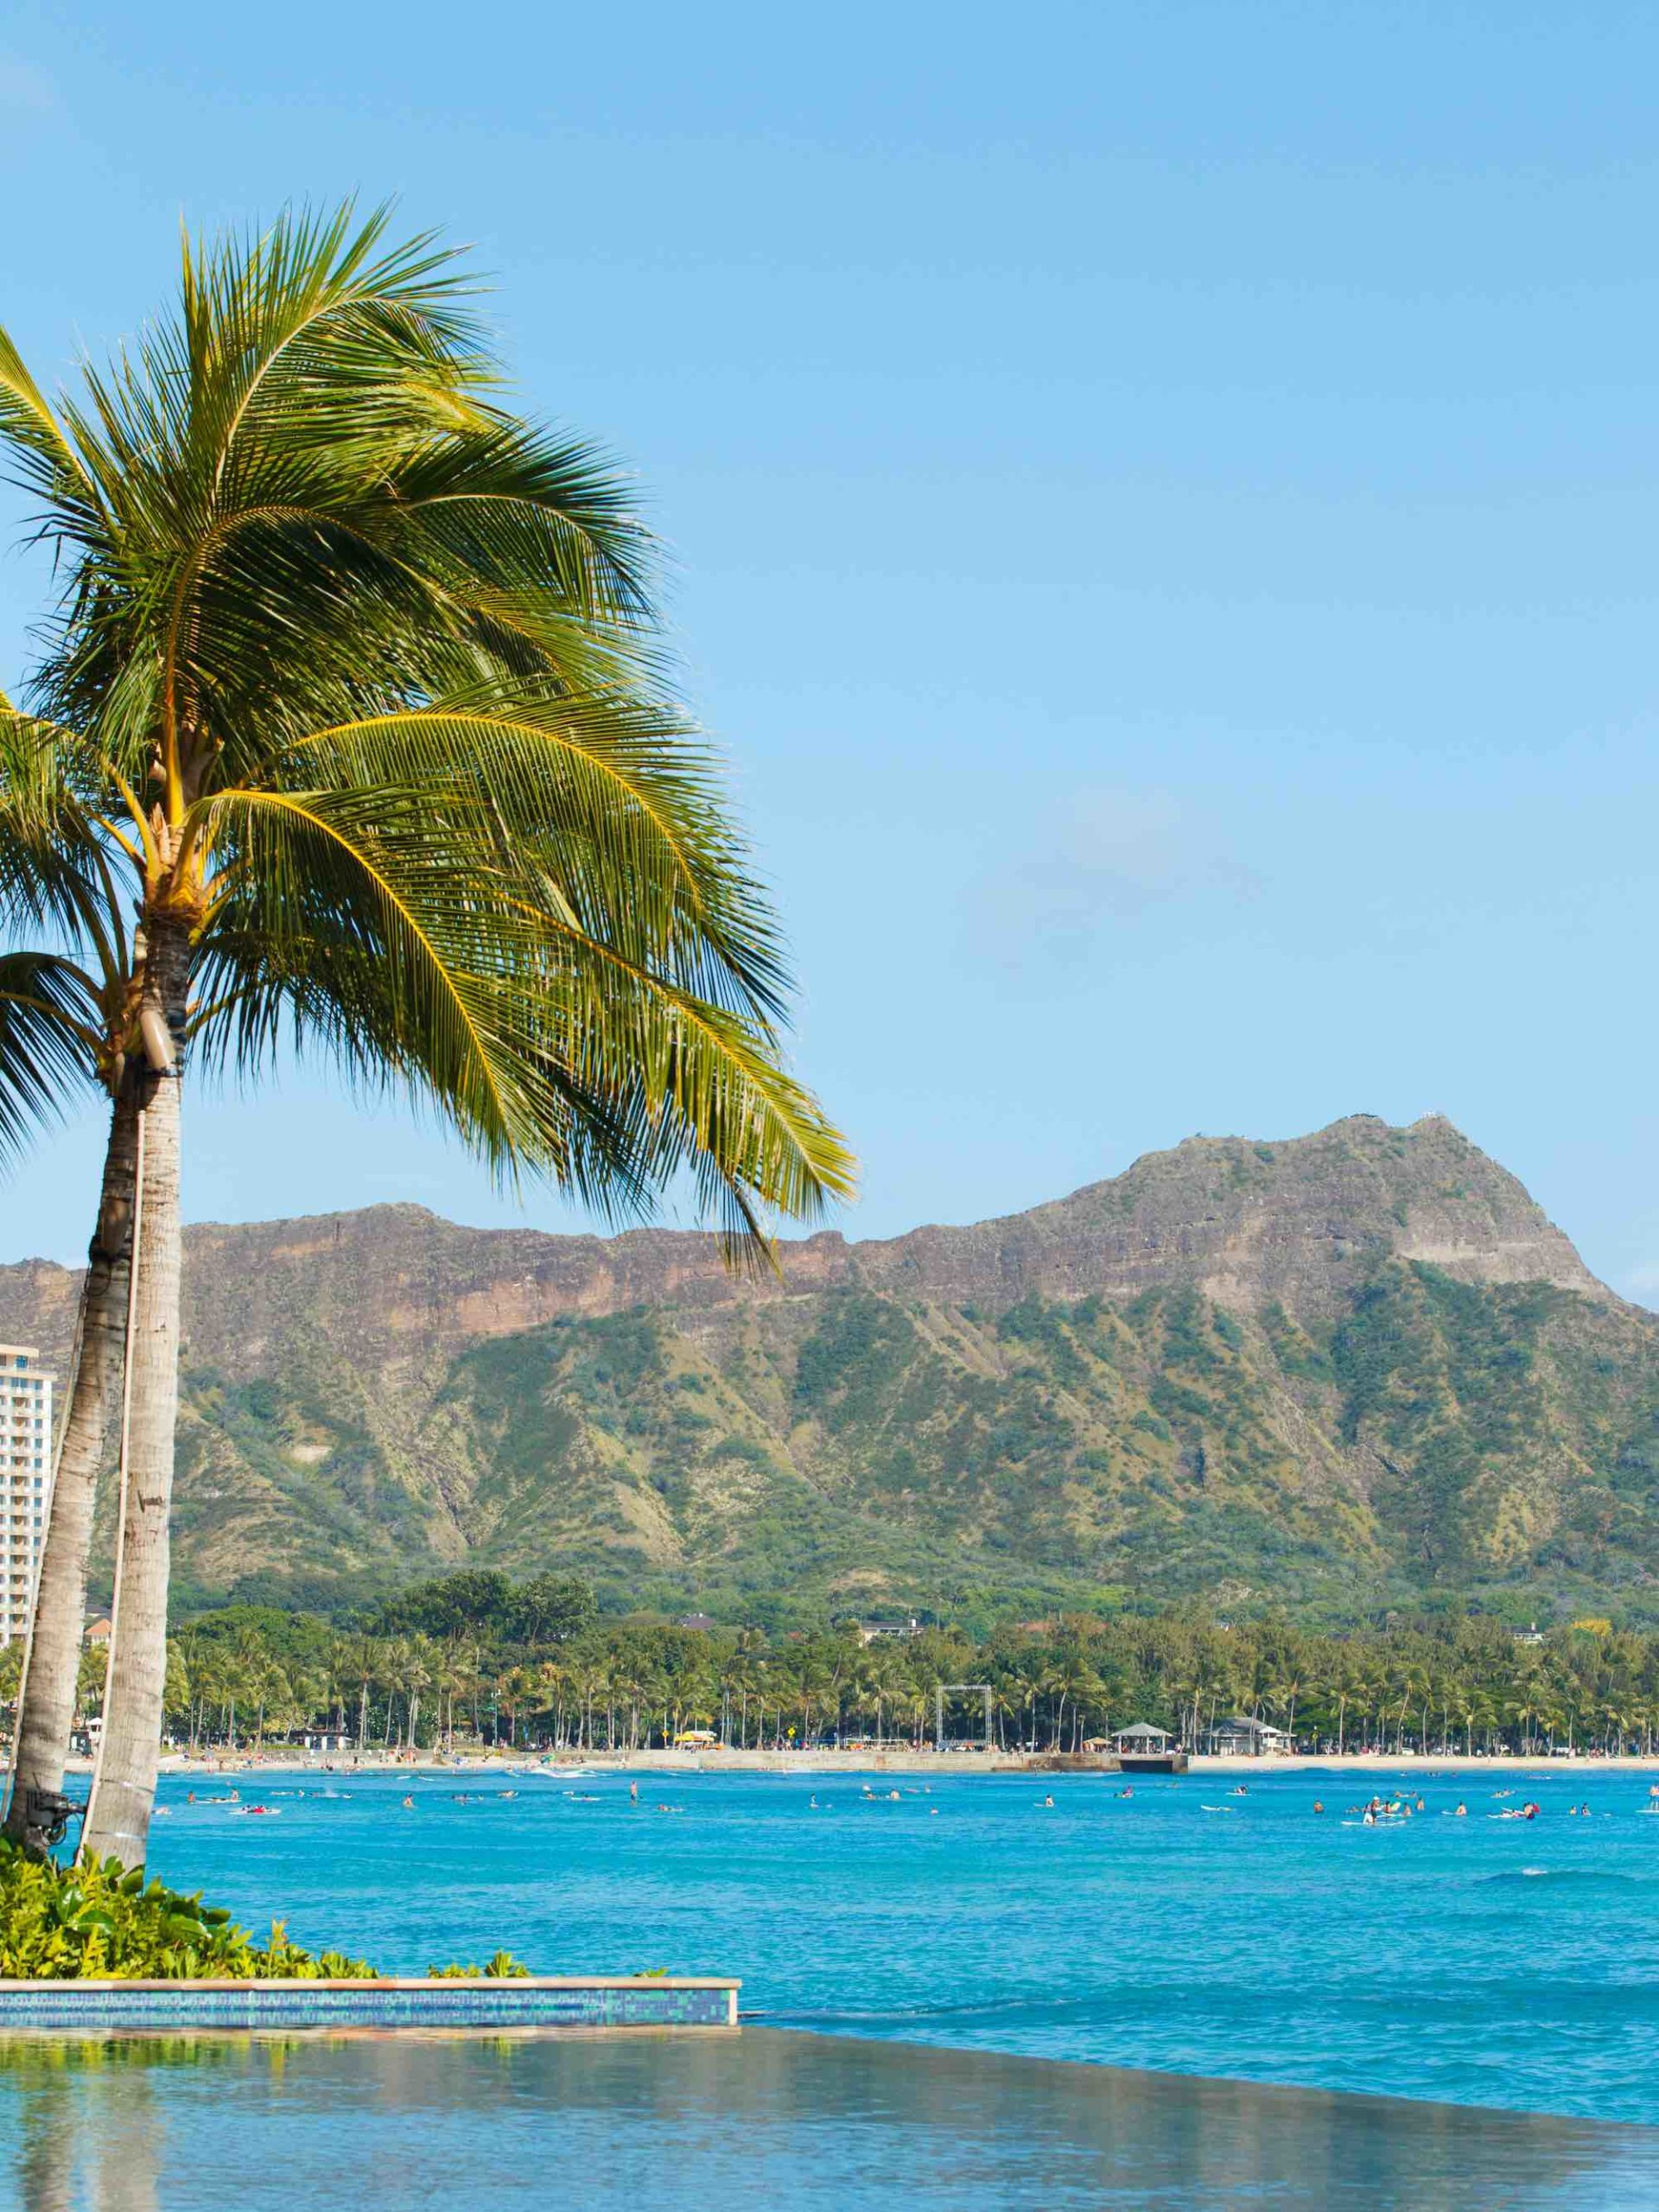 Find out 10 important Oahu travel tips you need to know before planning your Oahu vacation by top Hawaii blog Hawaii Travel with Kids. Image of Diamond Head in Waikiki, Oahu.